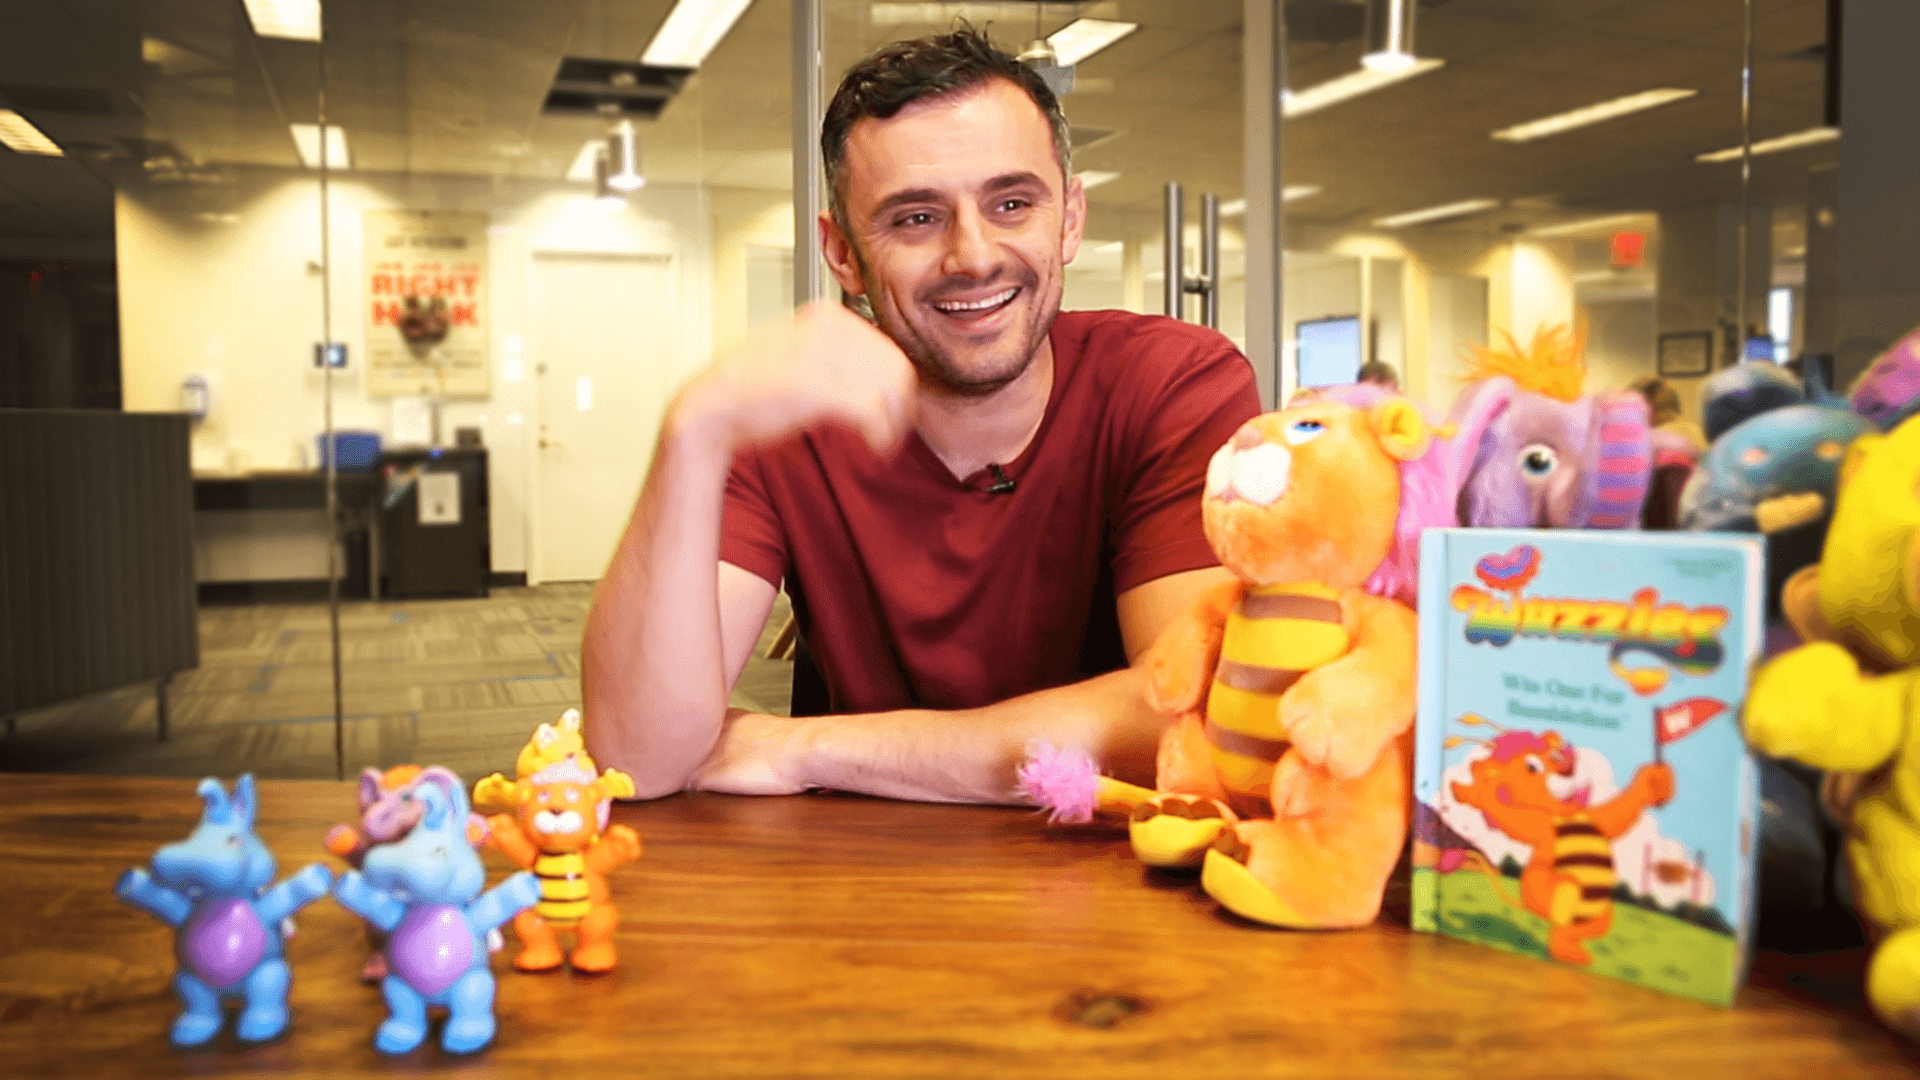 Gary Vaynerchuk and his Wuzzle collection